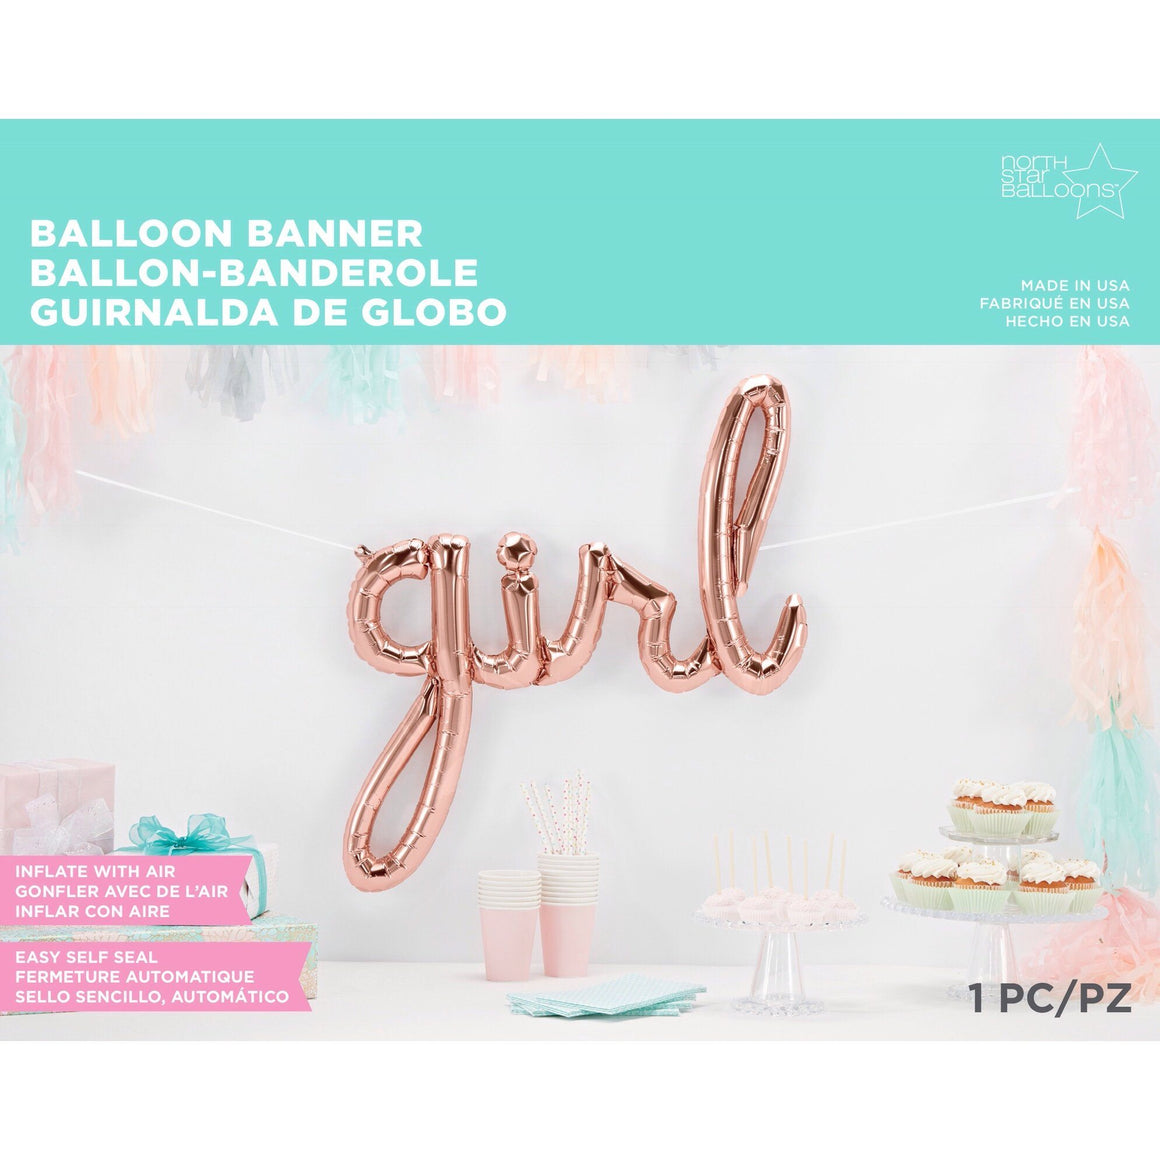 BALLOONS - SCRIPT ROSE GOLD GIRL, Balloons, Northstar (Surprize Enterprize) - Bon + Co. Party Studio